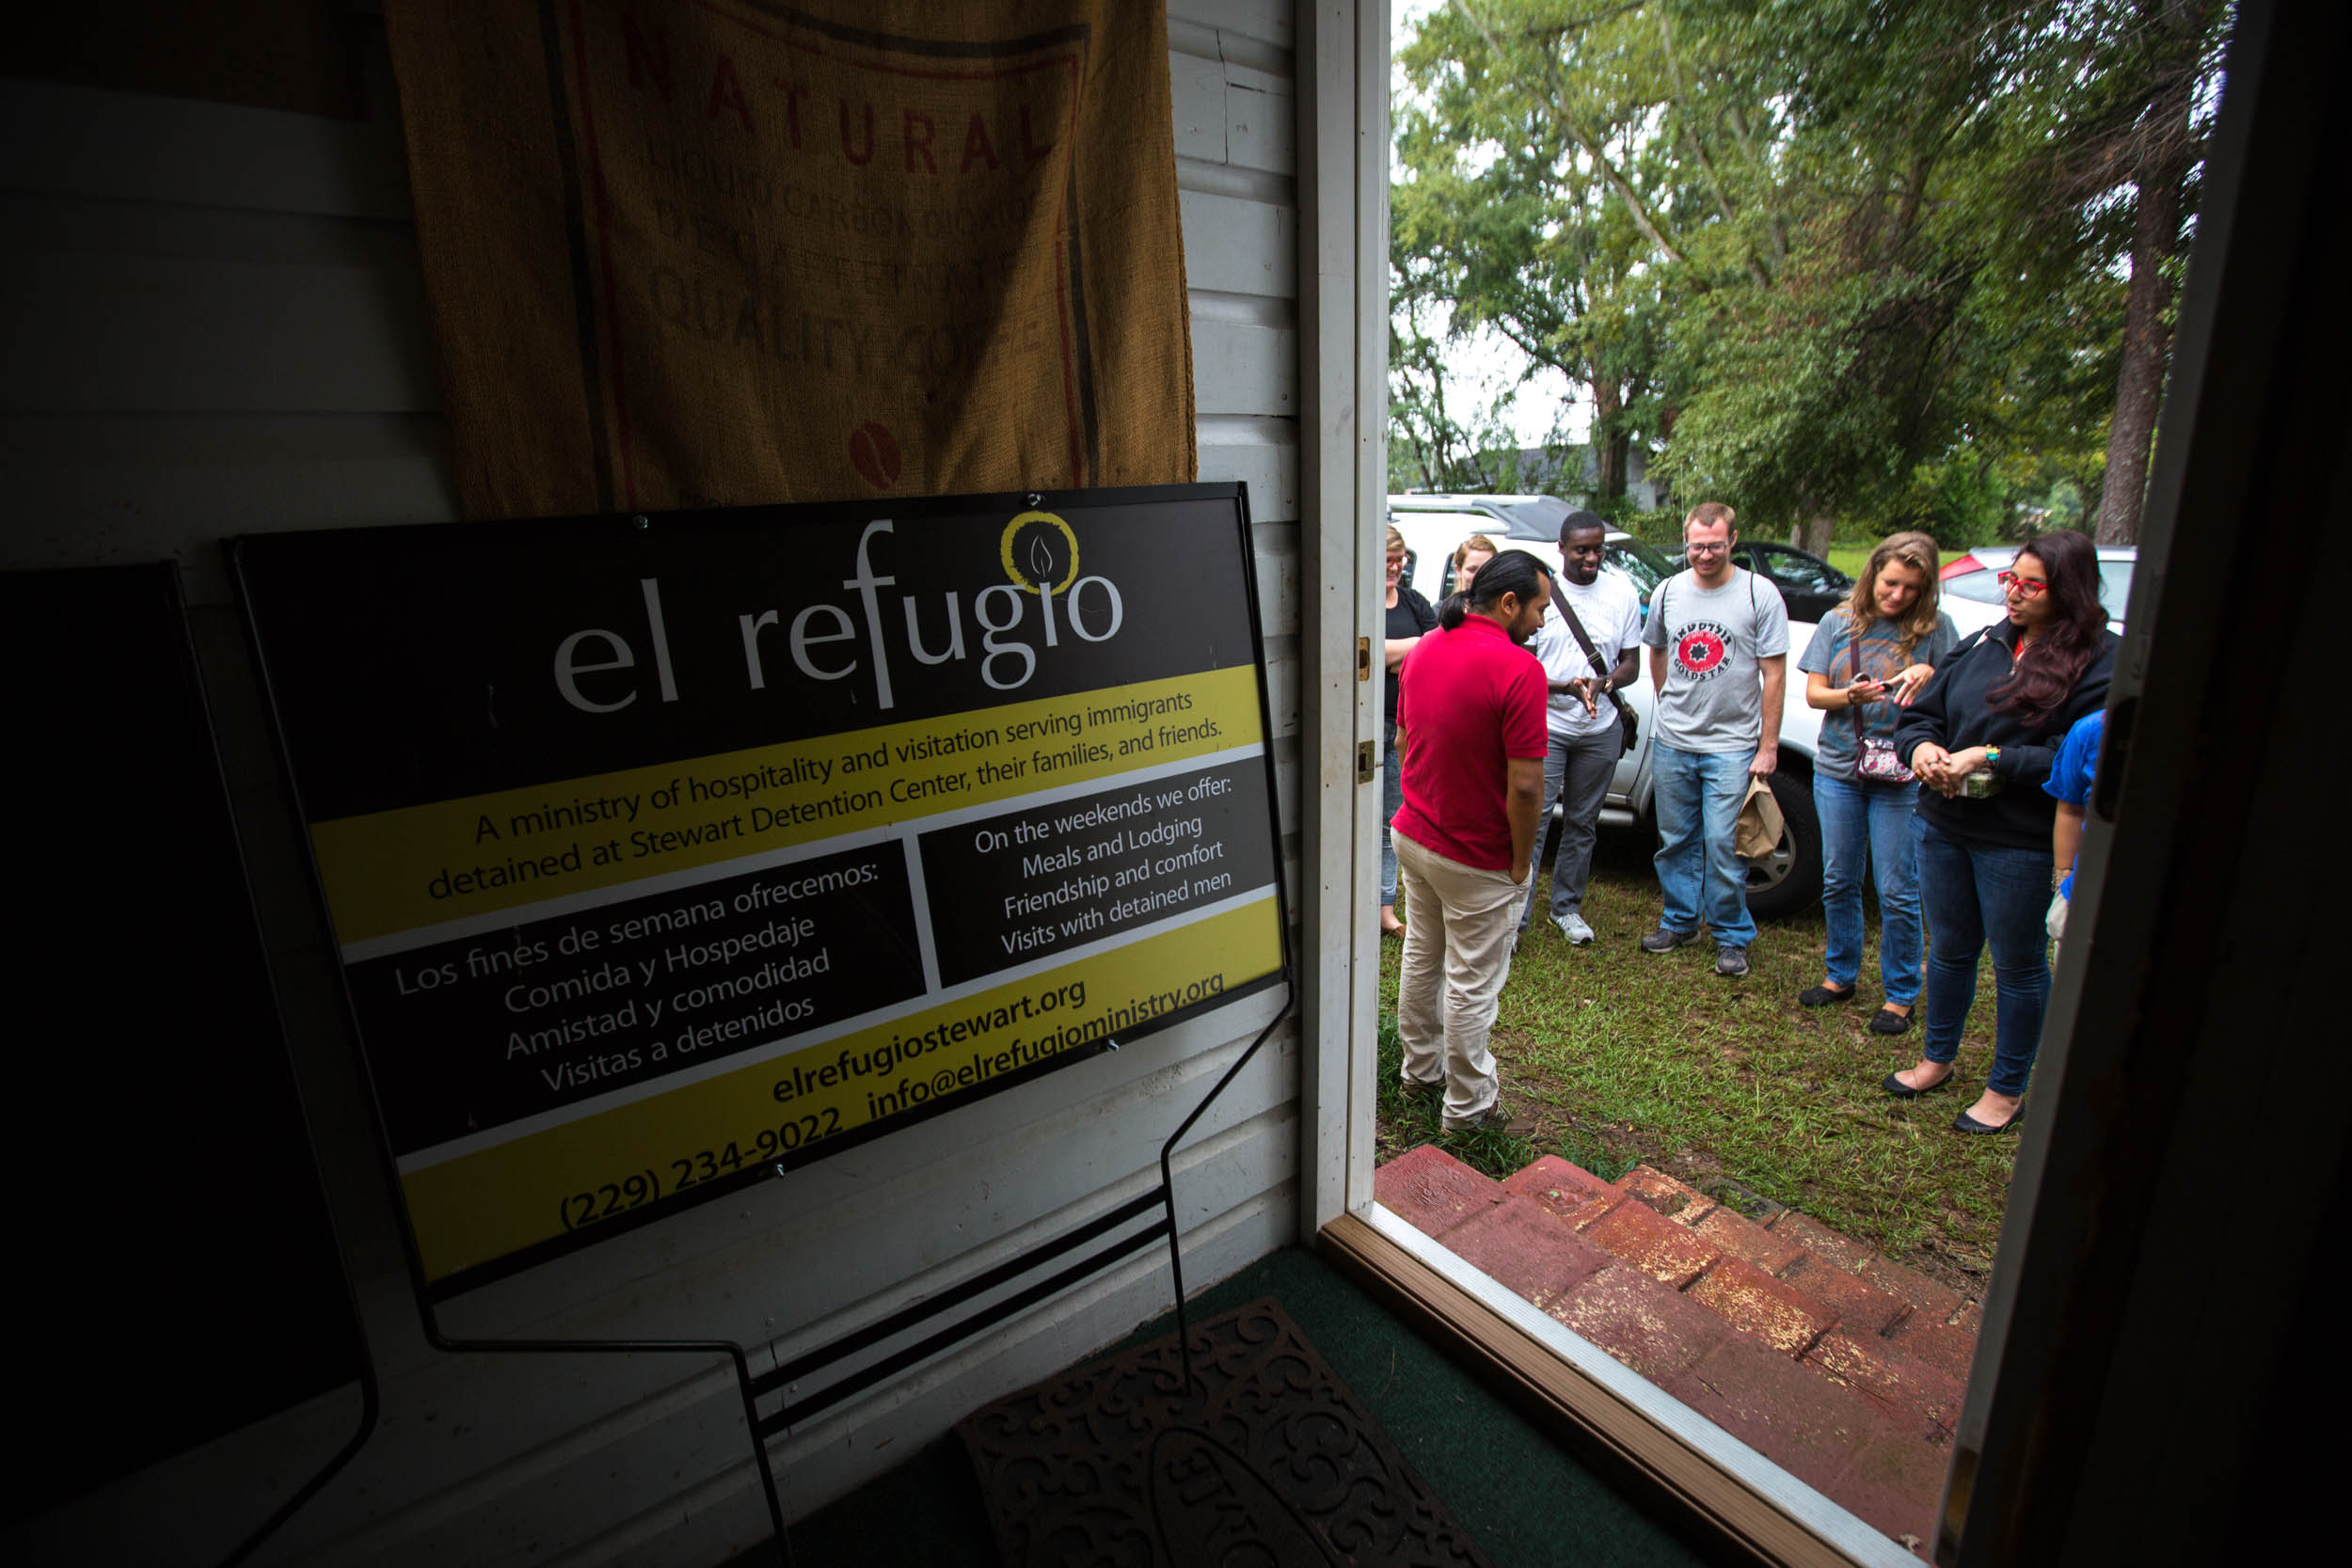 Amilcar Valencia gathers with a group of Emory University Students at El Refugio, Saturday, Sept. 12, 2015, in Lumpkin, Ga. (Photo by Branden Camp)